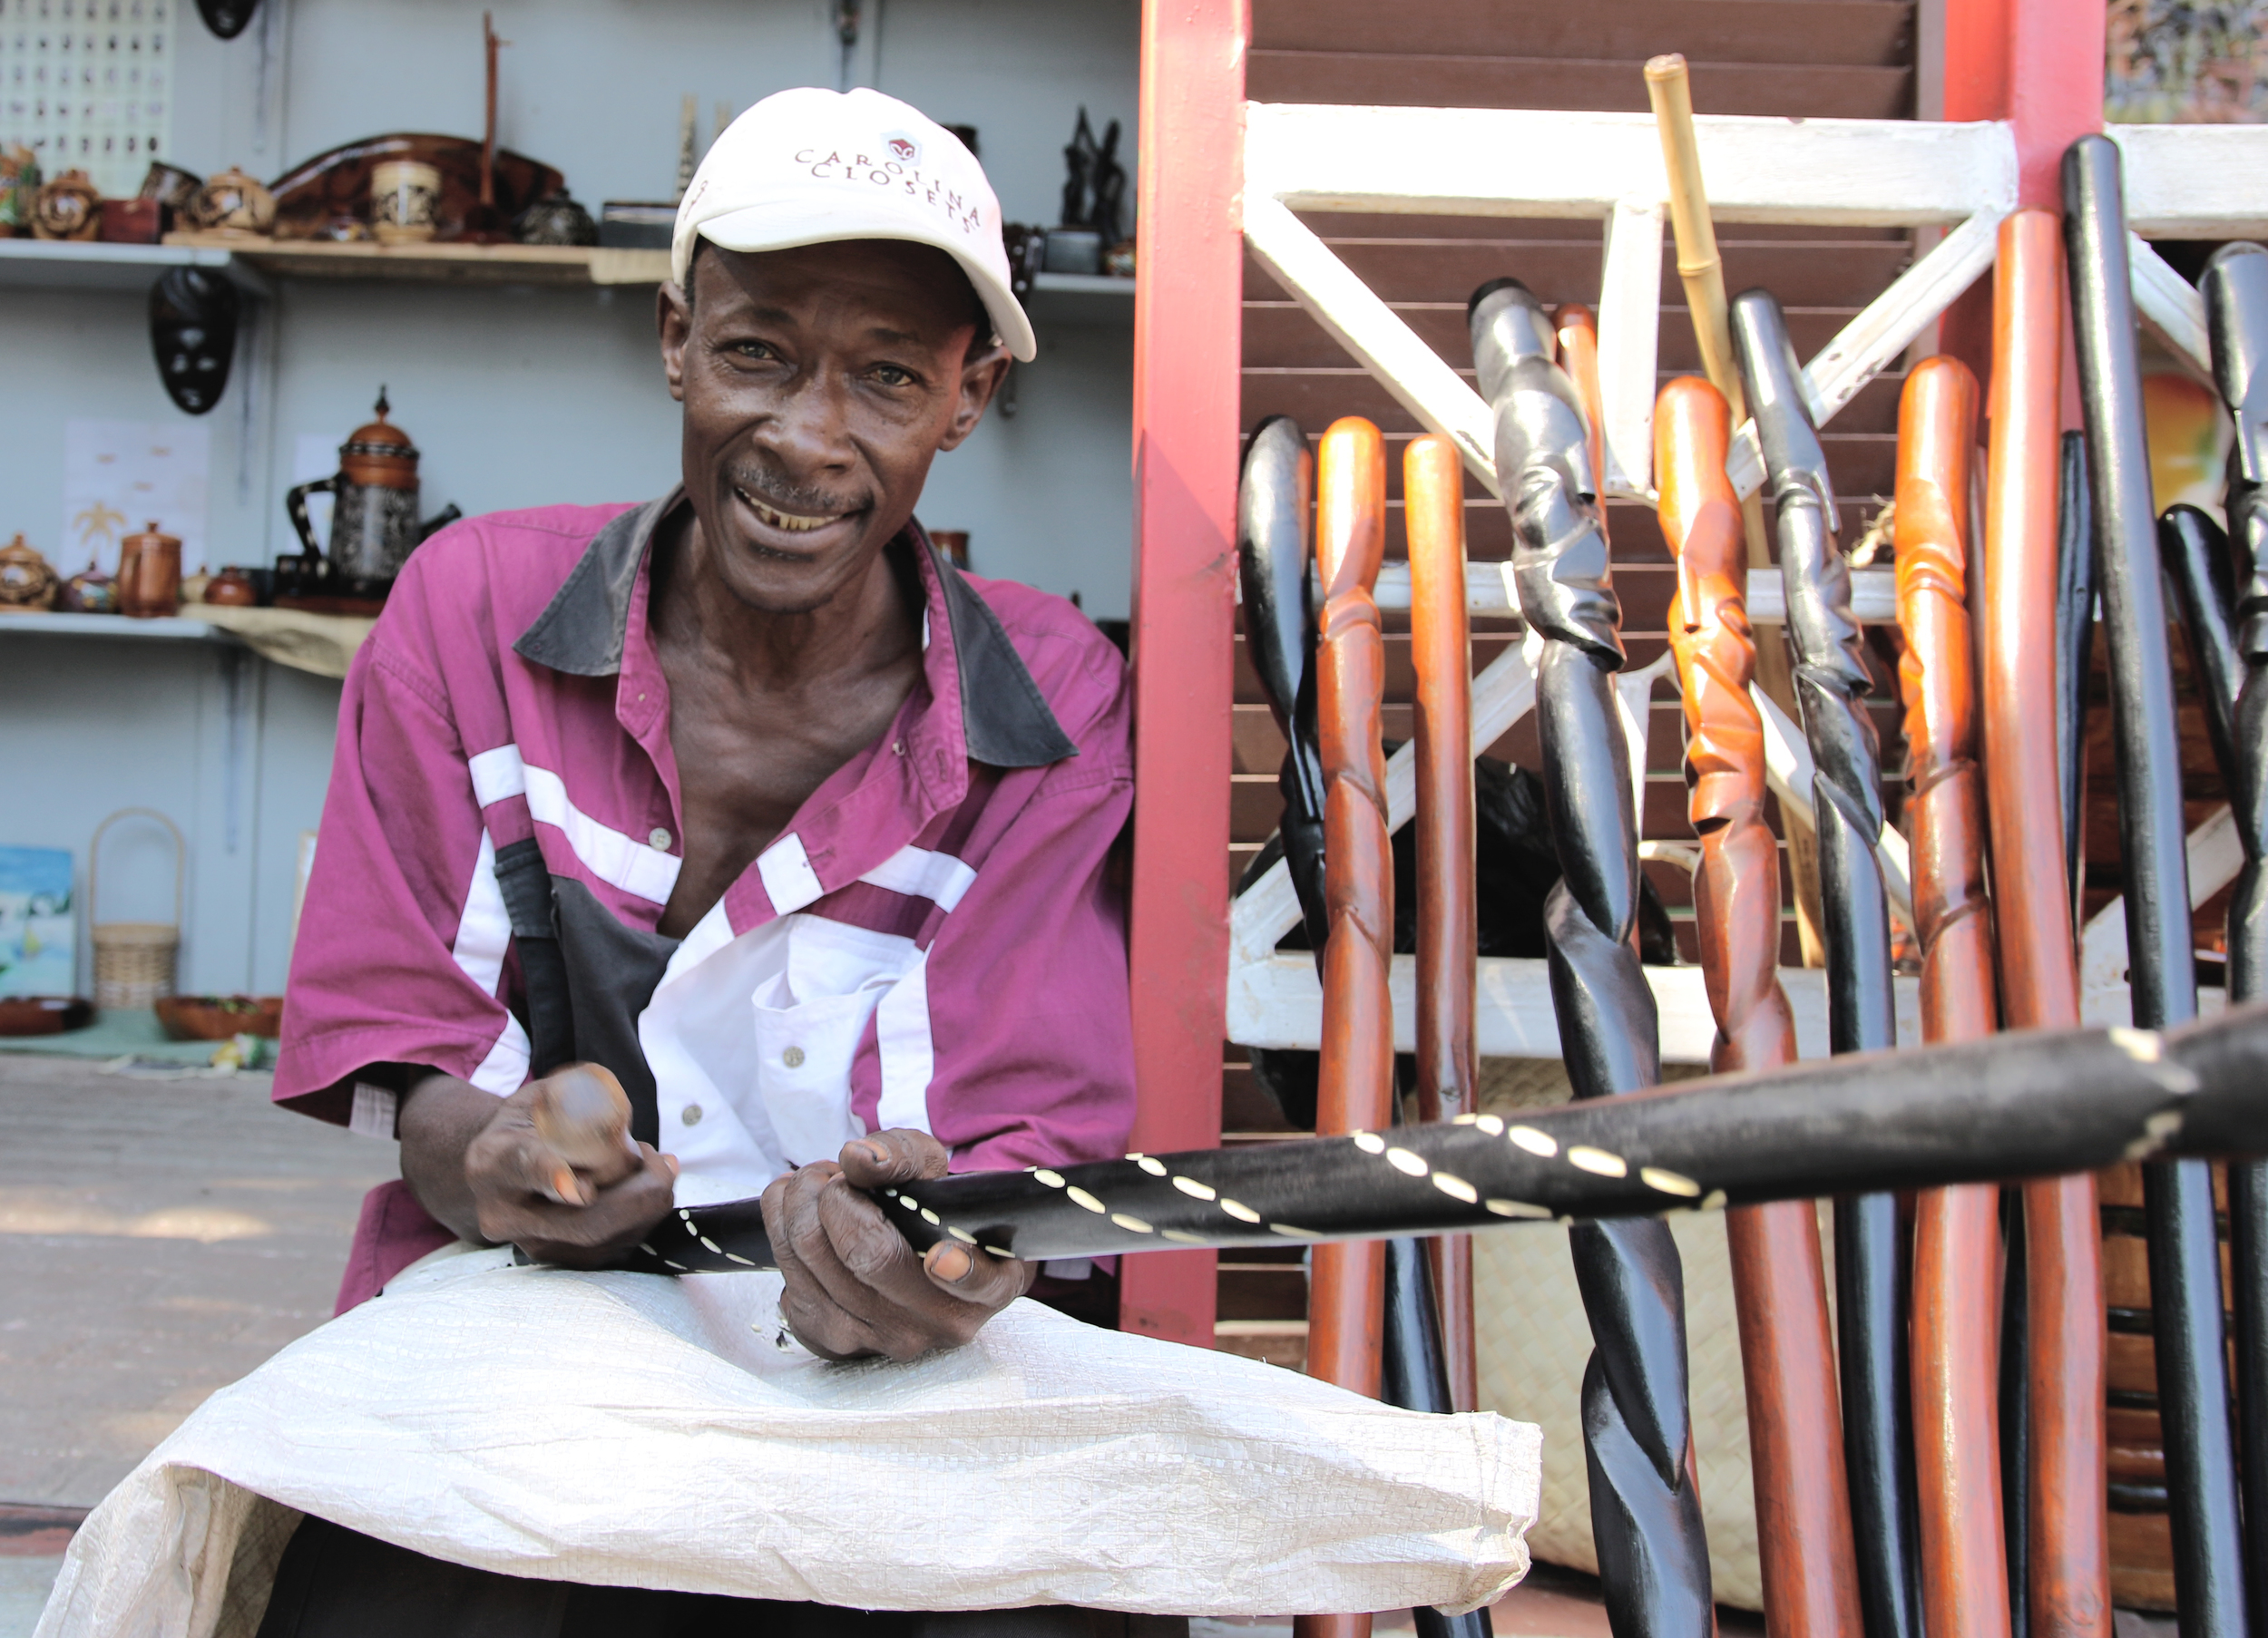 AN ARTISAN CARVES WOOD AND SELLS HIS WORK IN PORT-AU-PRINCE.